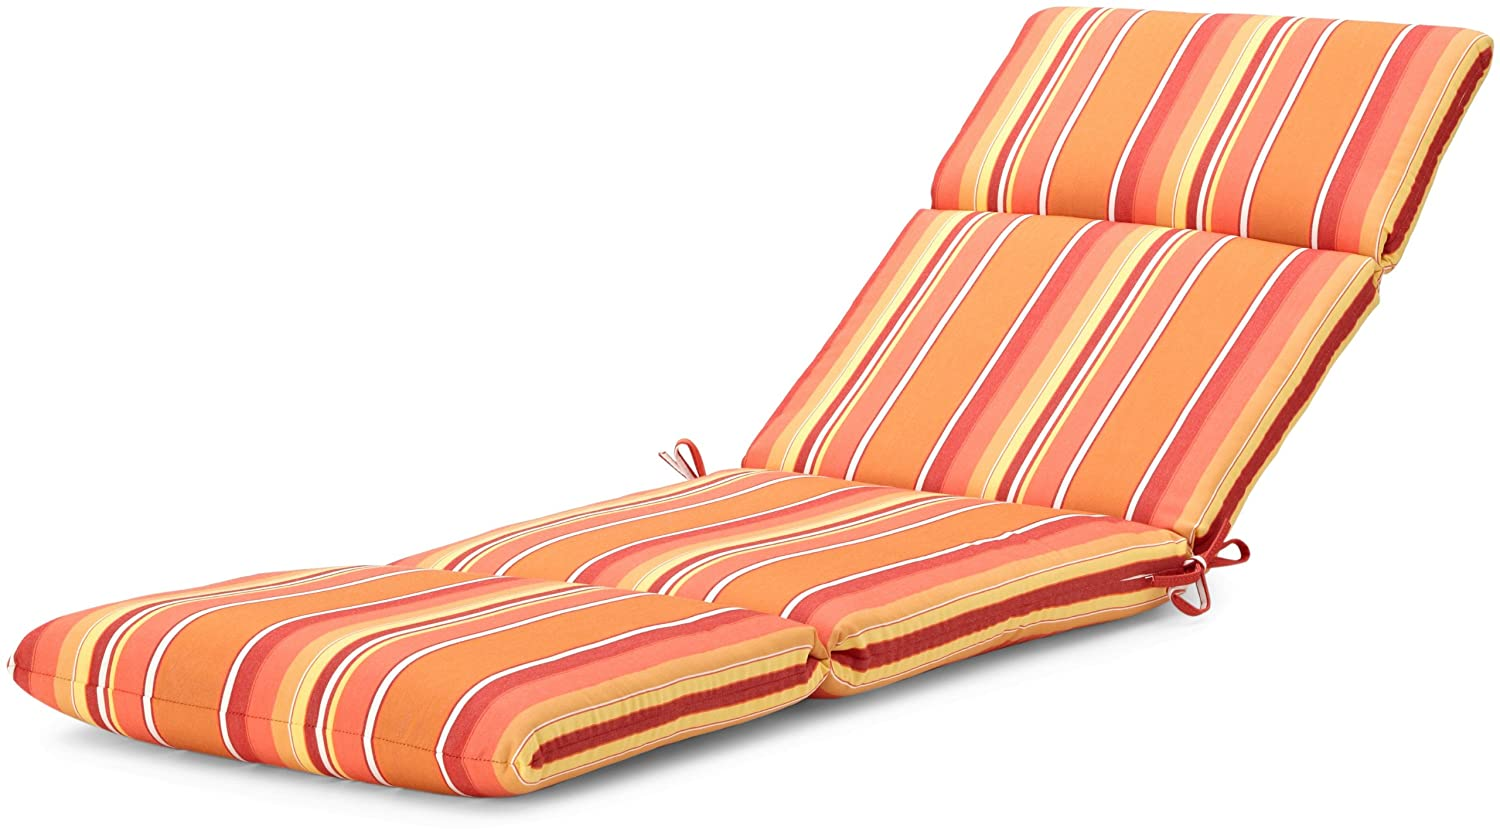 Best Strathwood Patio Furniture Replacement Cushions with images · gshepador · Storify